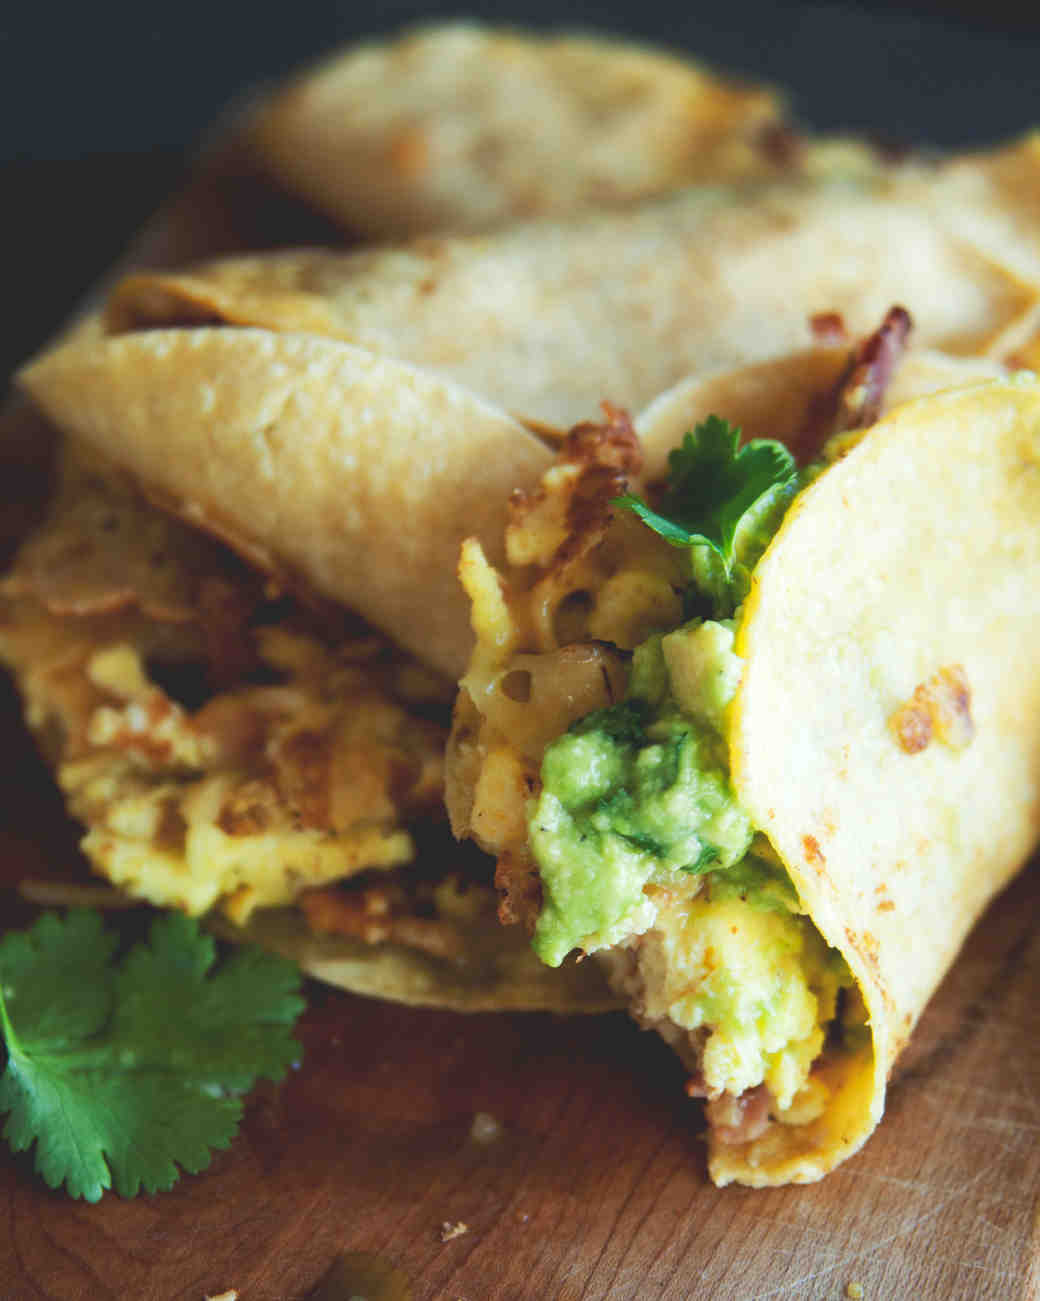 claire-thomas-valentines-day-breakfast-tacos-4-0215.jpg